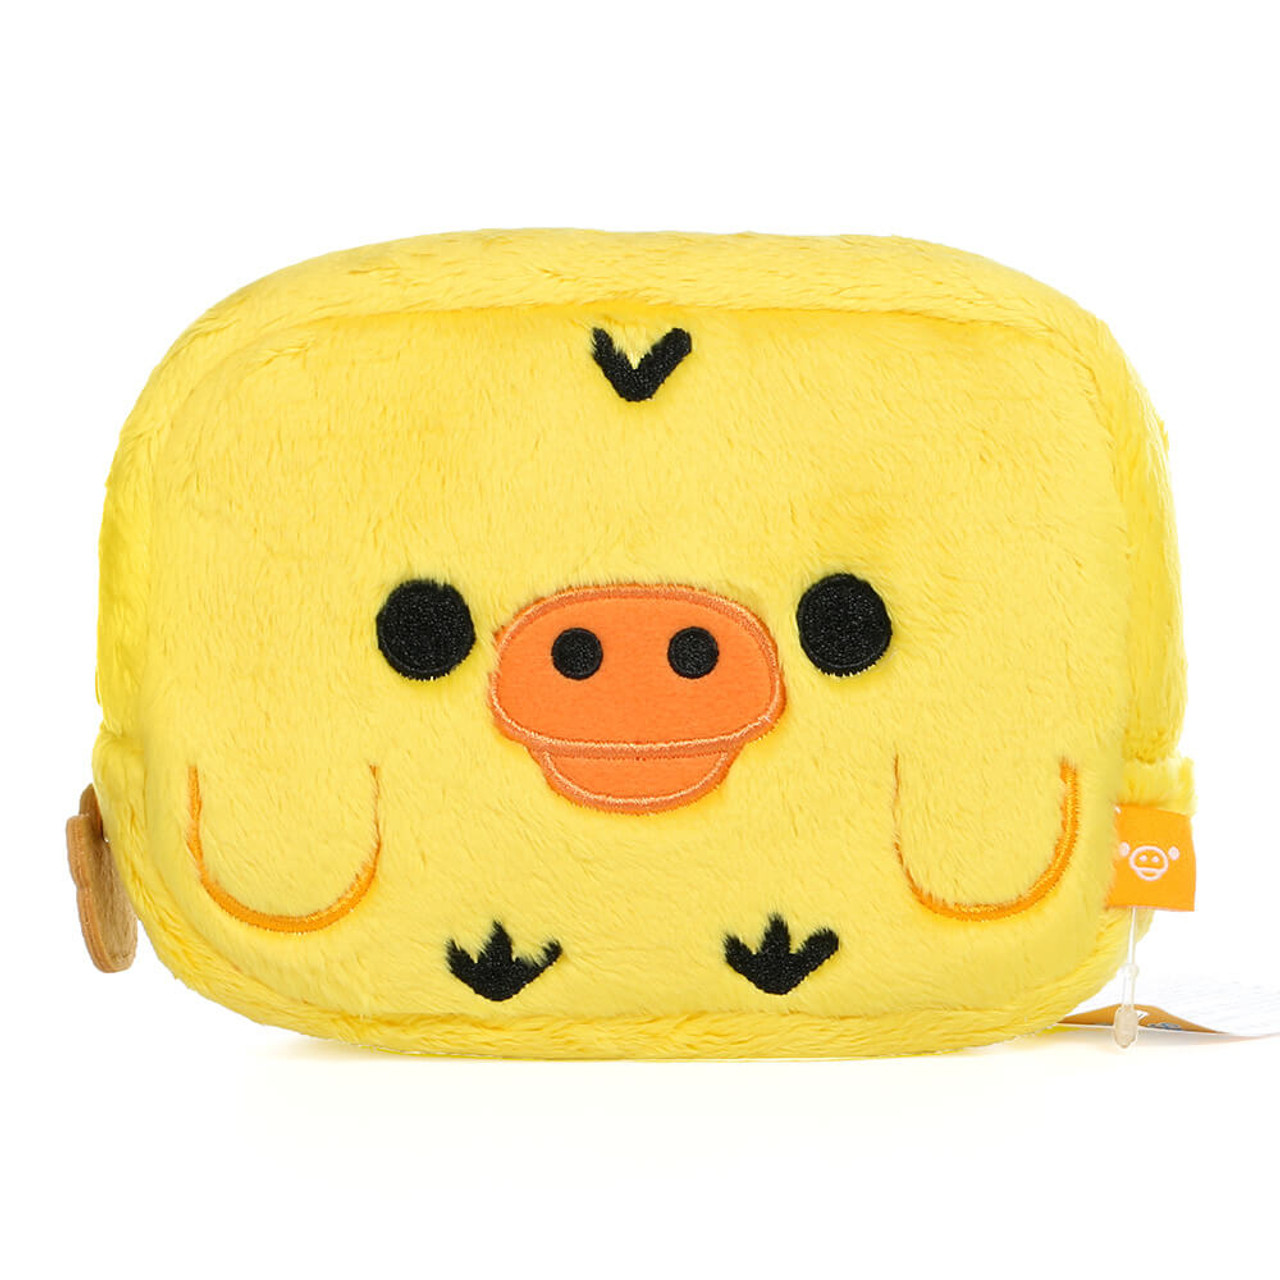 San-x Kiiroitori Yellow Chick Rectangle Face Plush Cosmetic Pouch ( Front View )